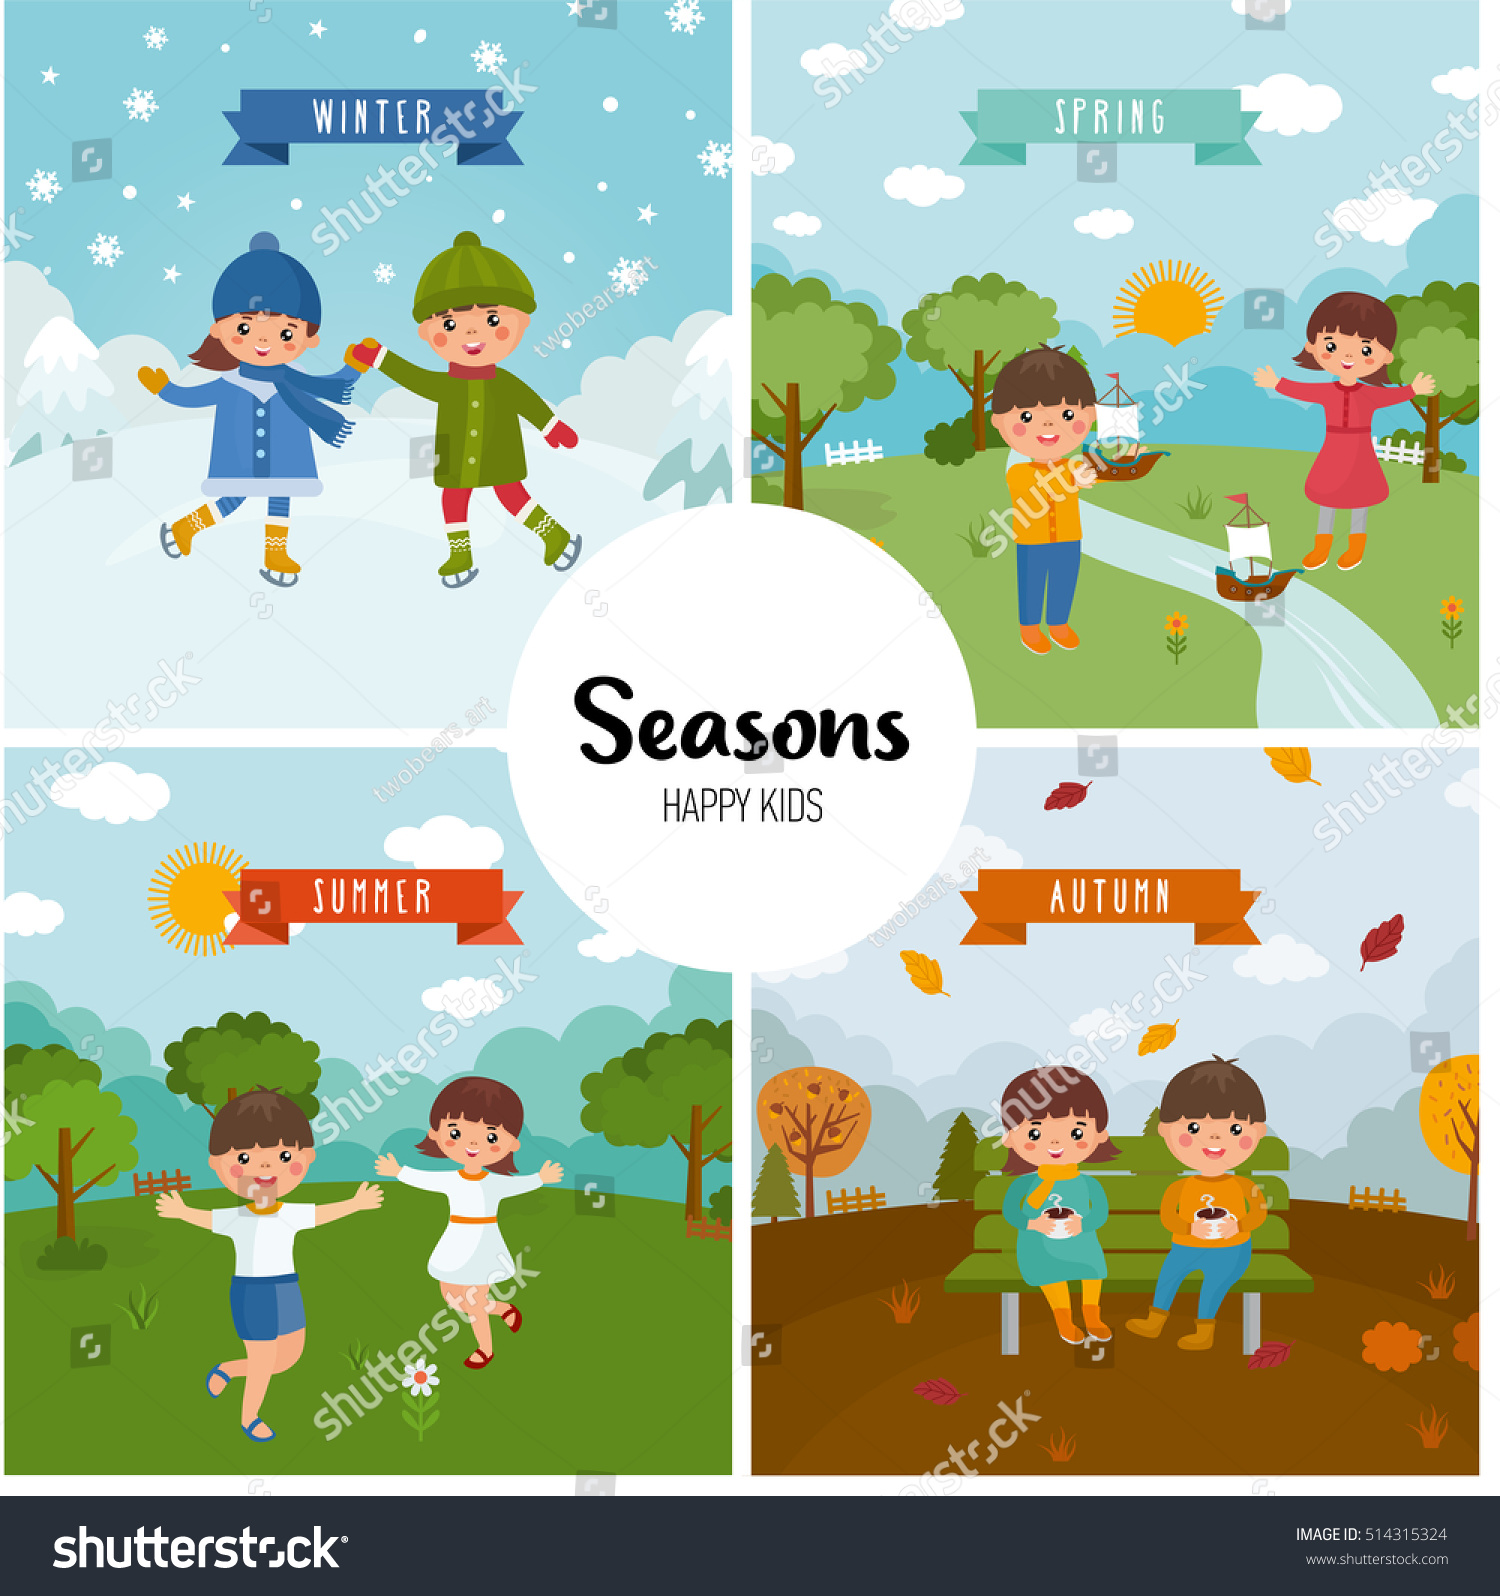 essay about autumn season for kids Crafts for kids when is the autumnal equinox 2018 pay for professional descriptive essay on hillary autumn, season of cheap creative essay editing for hire online the year between summer and winter during which temperatures gradually decrease.